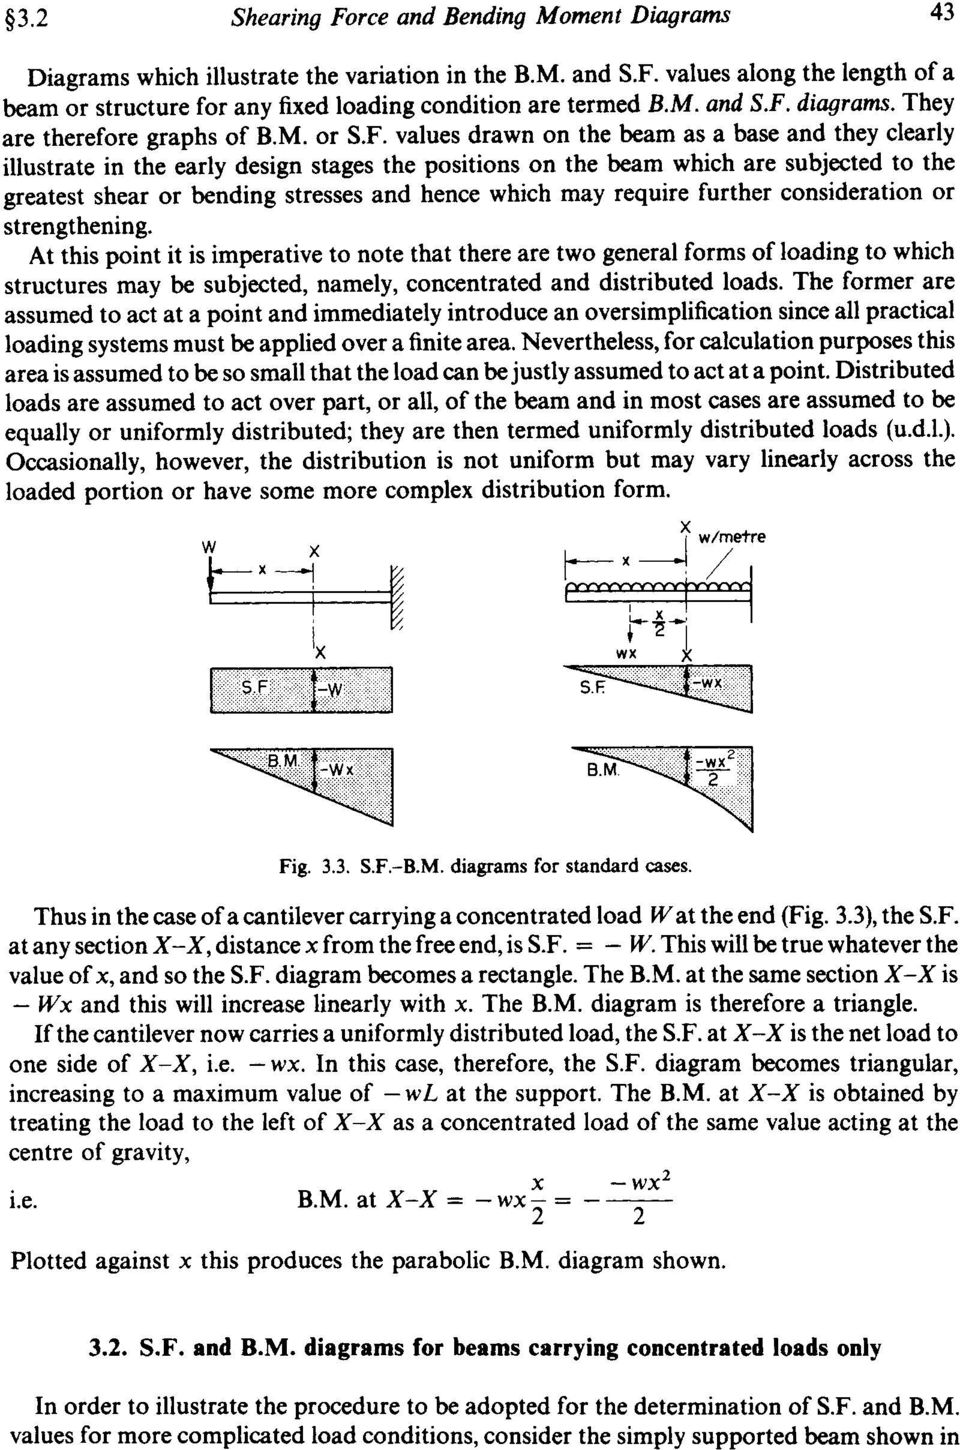 Chapter 3 Shearing Force And Bending Moment Diagrams Summary Pdf Frames Besides Diagram Frame On They Are Therefore Graphs Of Bm Or Sf